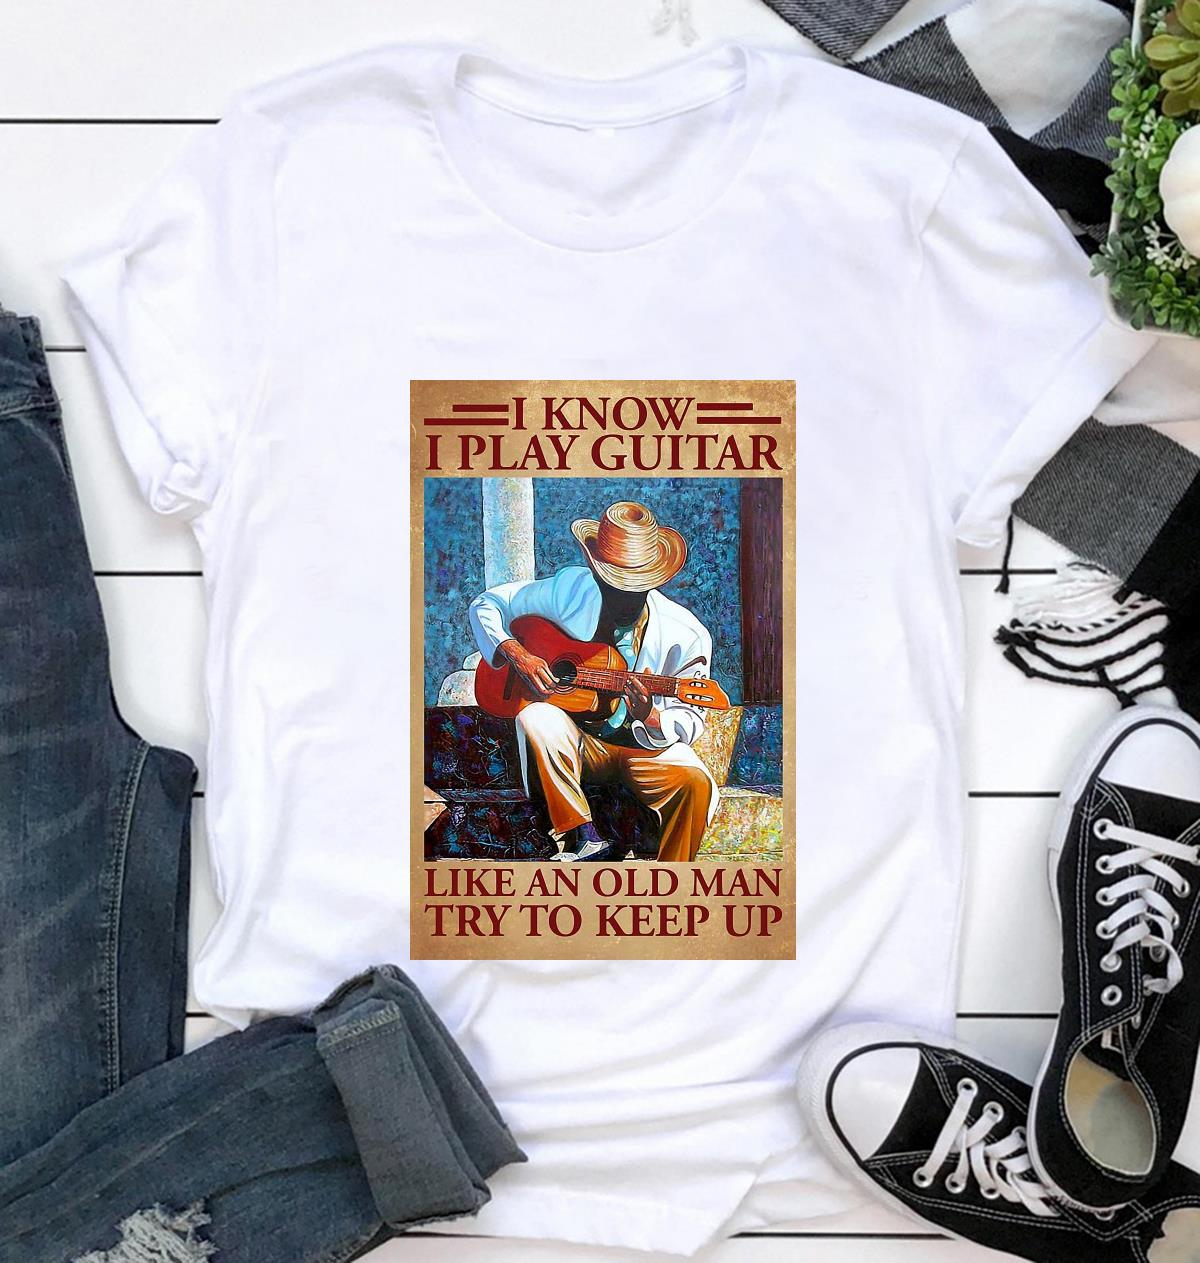 I know I play guitar like an old man poster canvas t-shirt